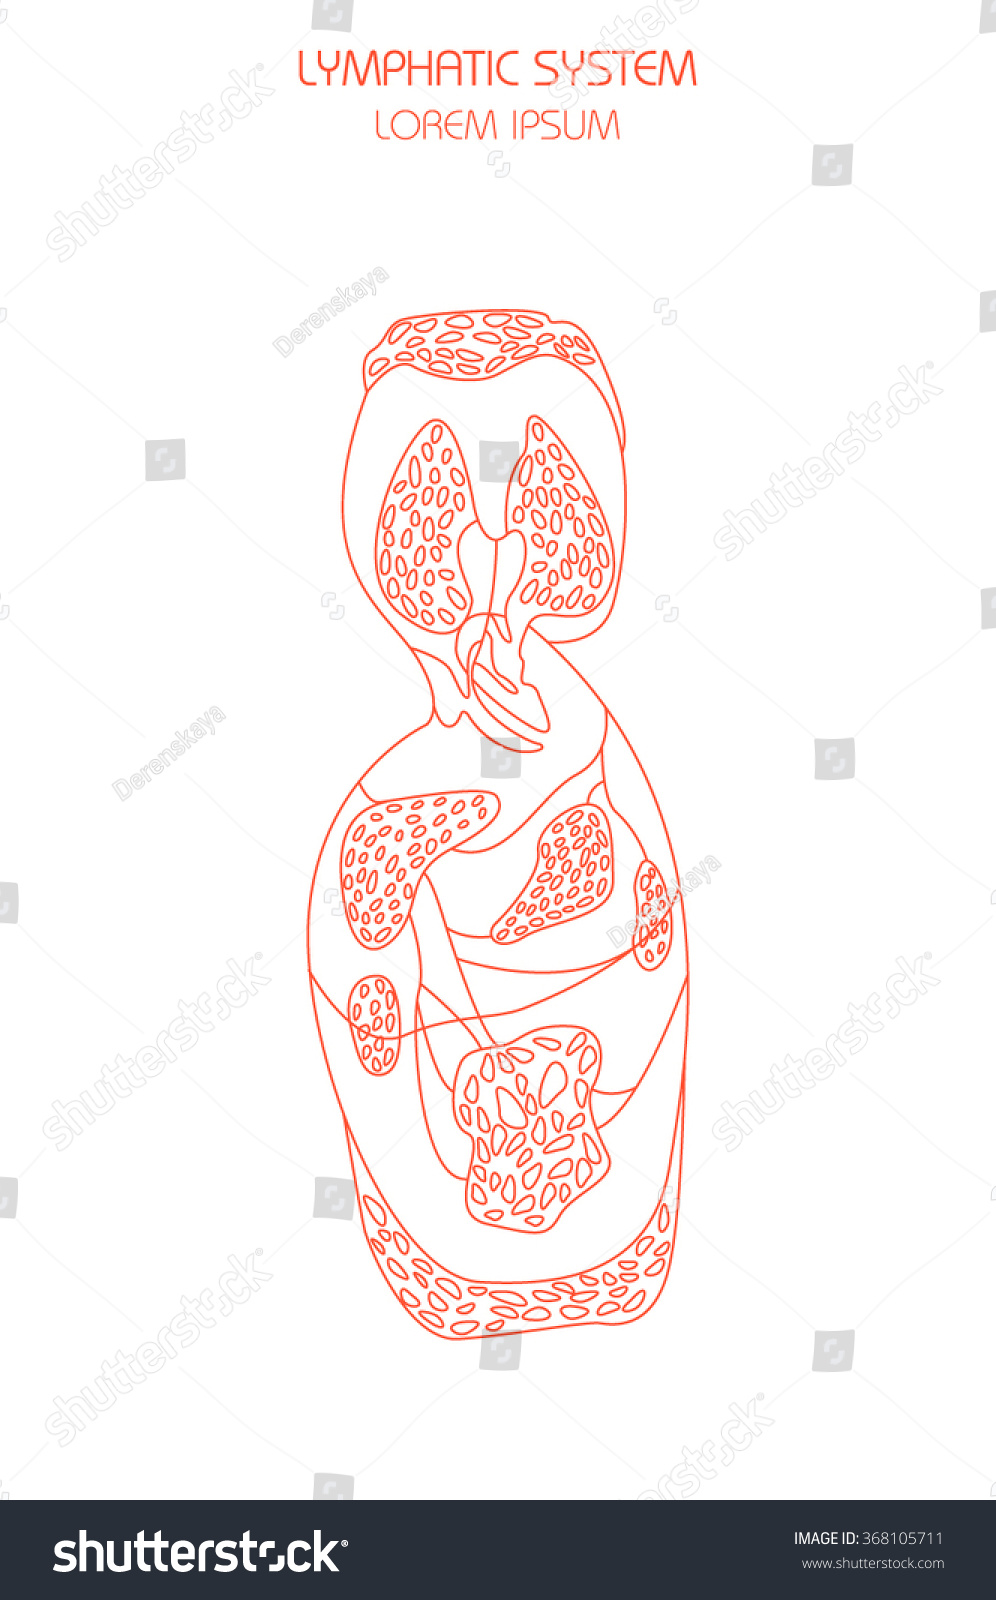 Thin Line Illustration Human Lymphatic System Stock Vector Royalty